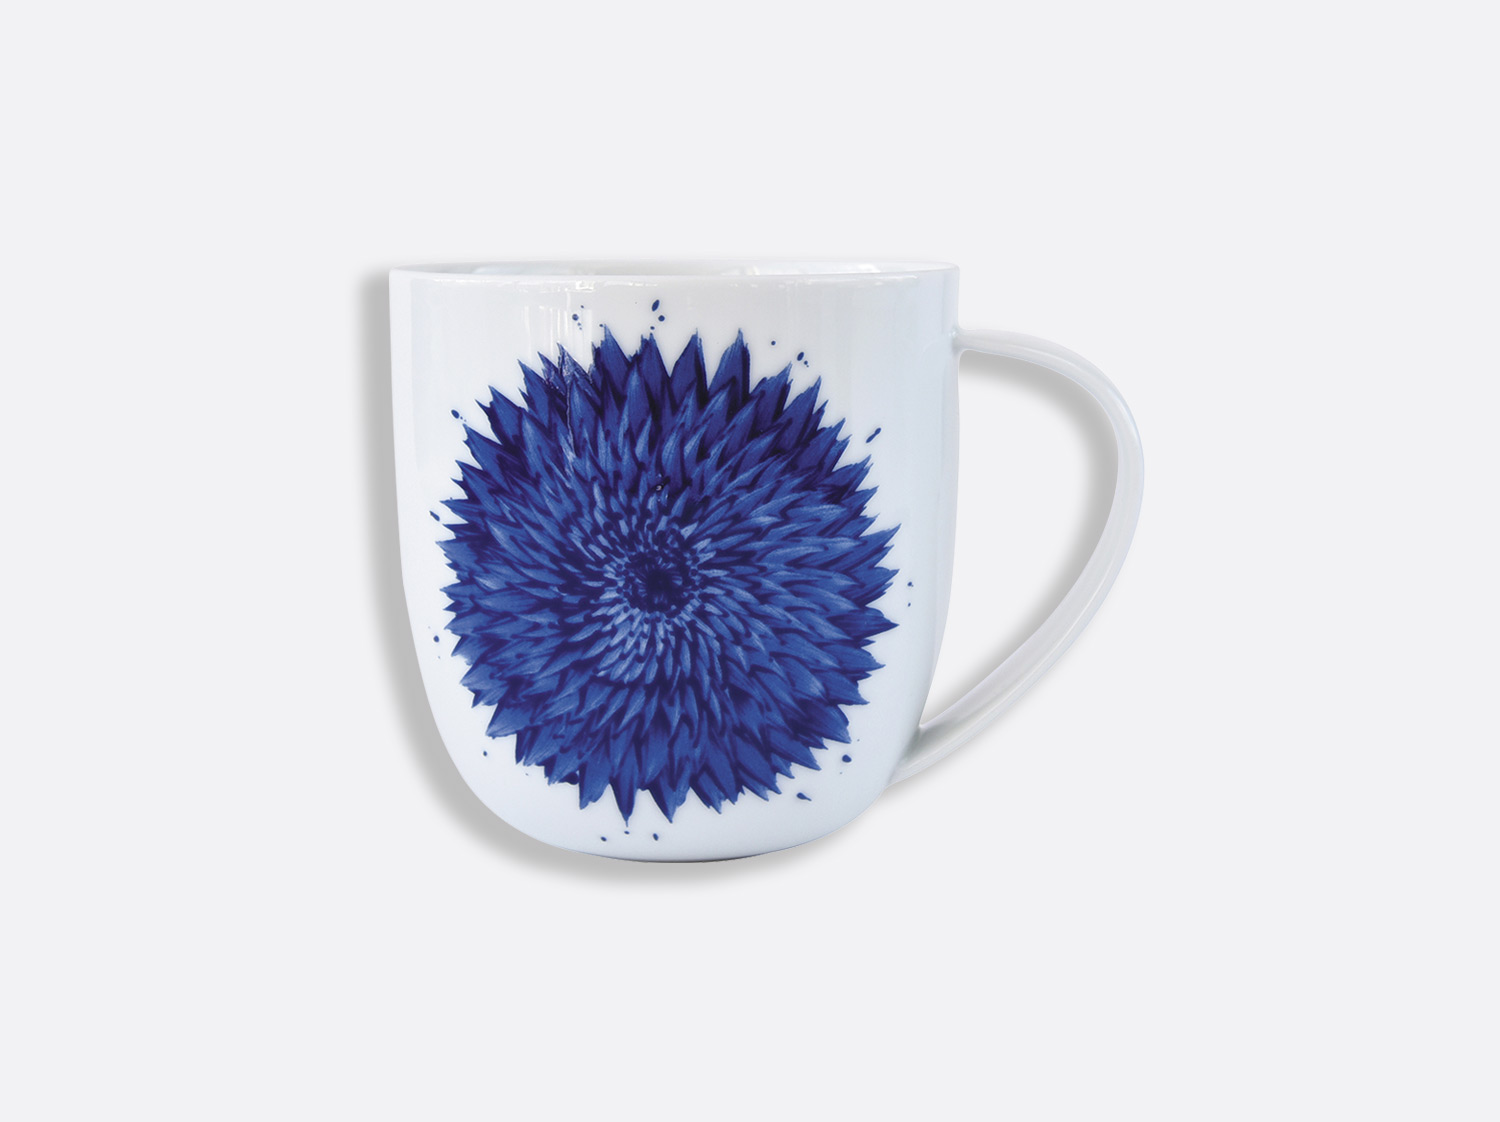 China Mug blue of the collection IN BLOOM - Zemer Peled | Bernardaud